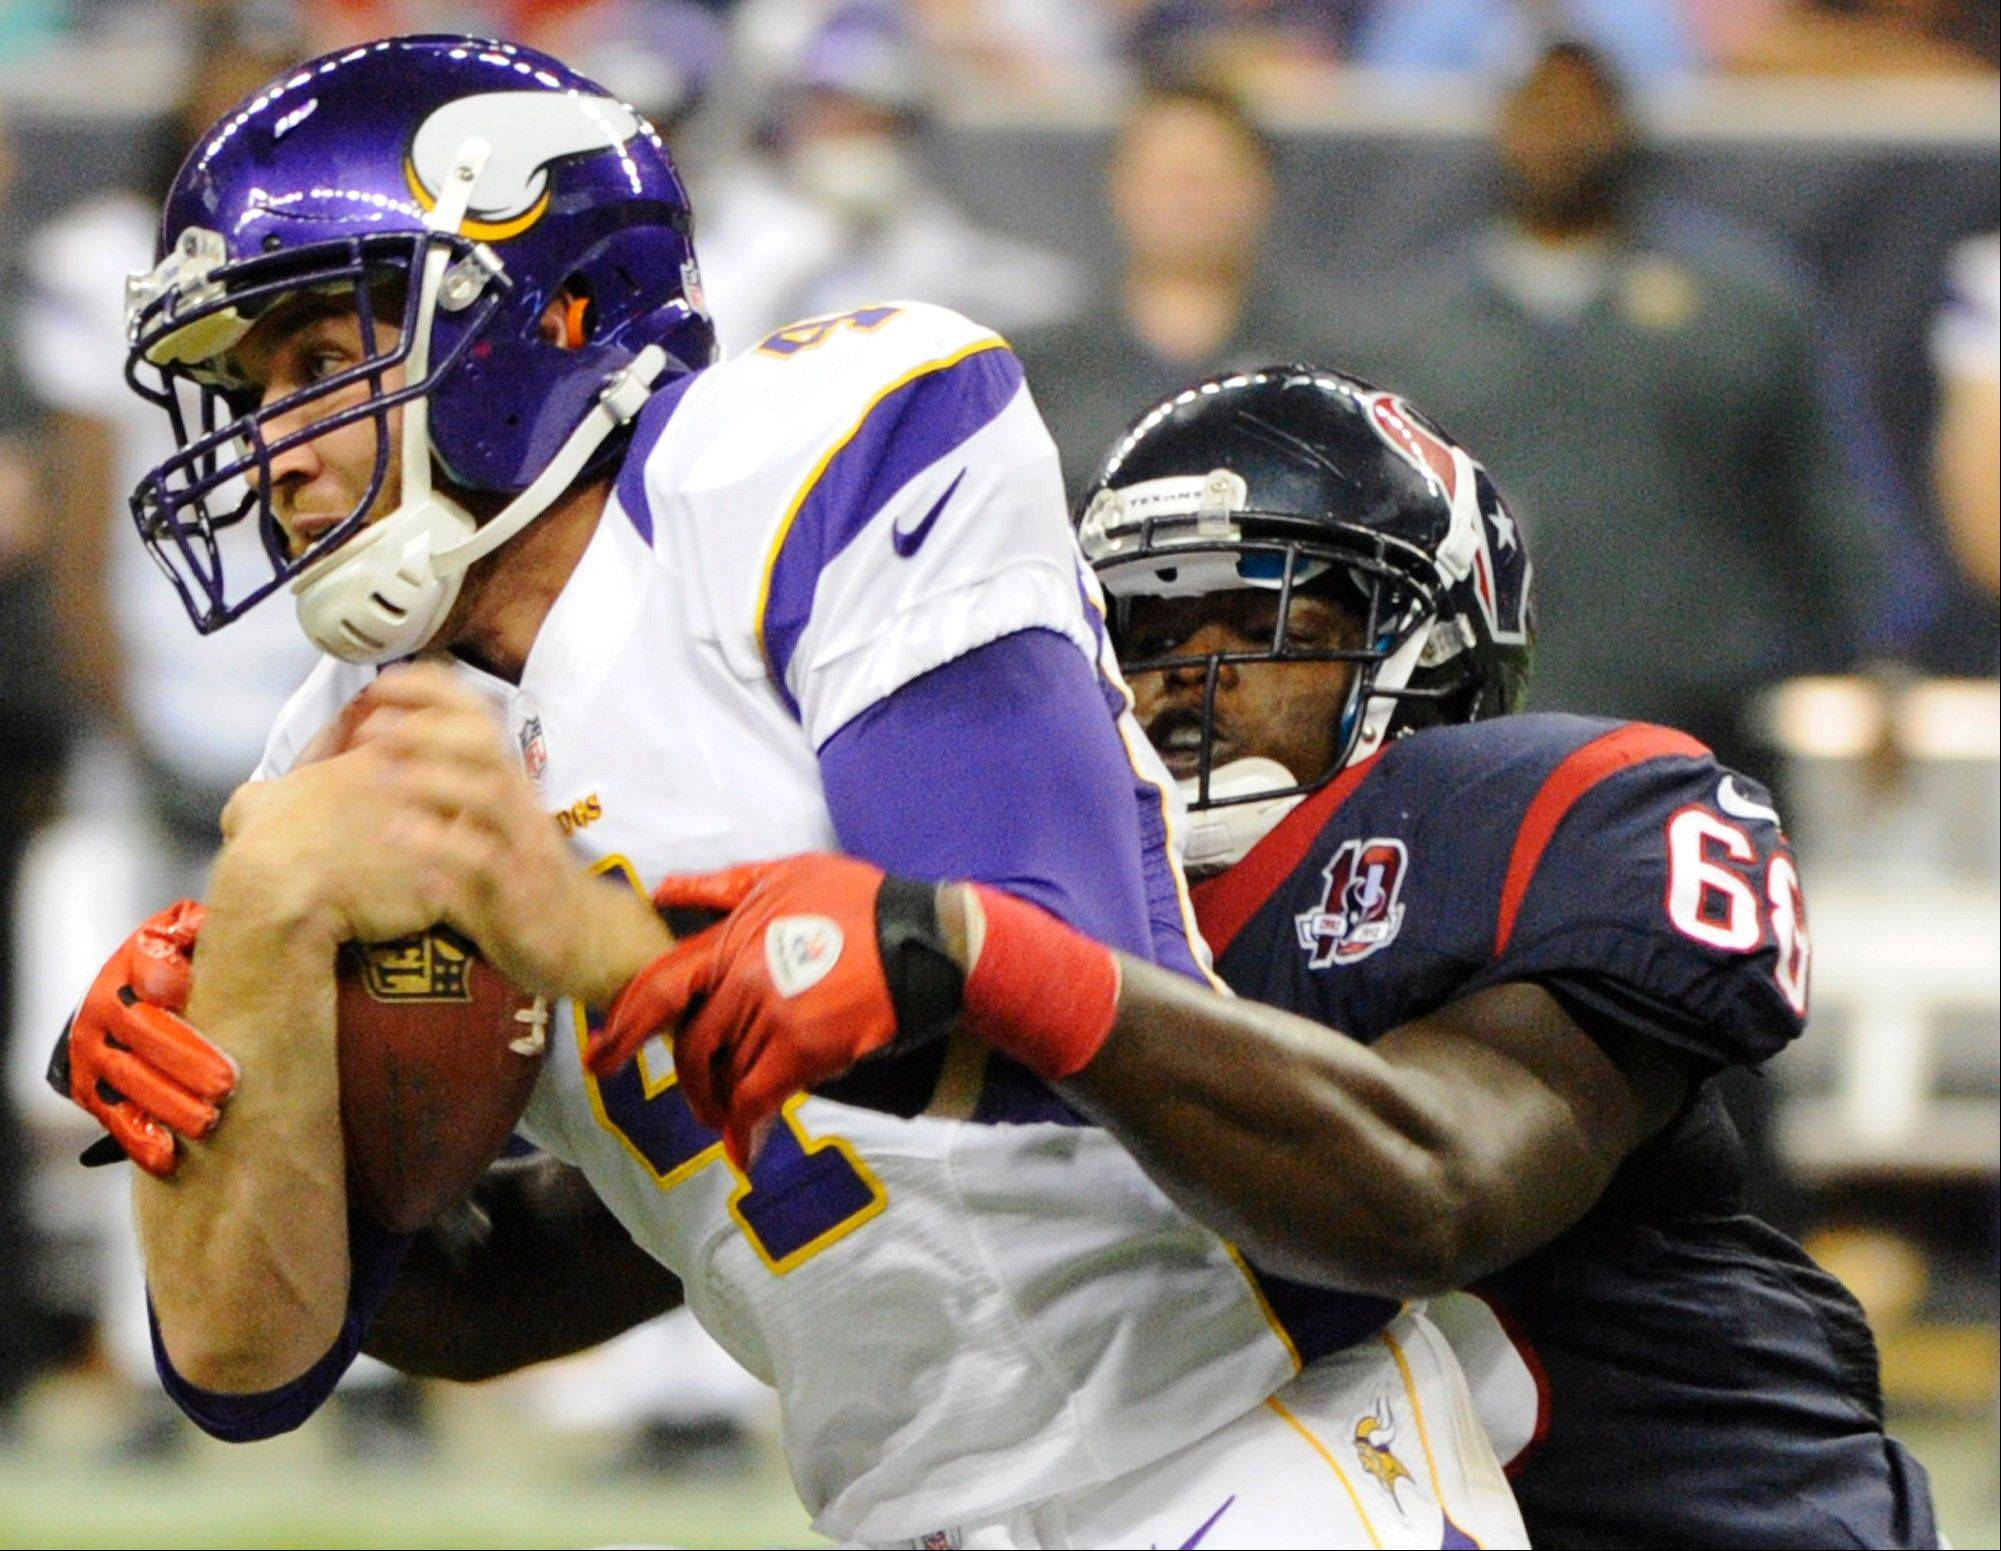 Houston Texans defensive tackle Rennie Moore wraps up Minnesota Vikings quarterback McLeod Bethel-Thompson during the second half of Thursday's preseason game in Houston.